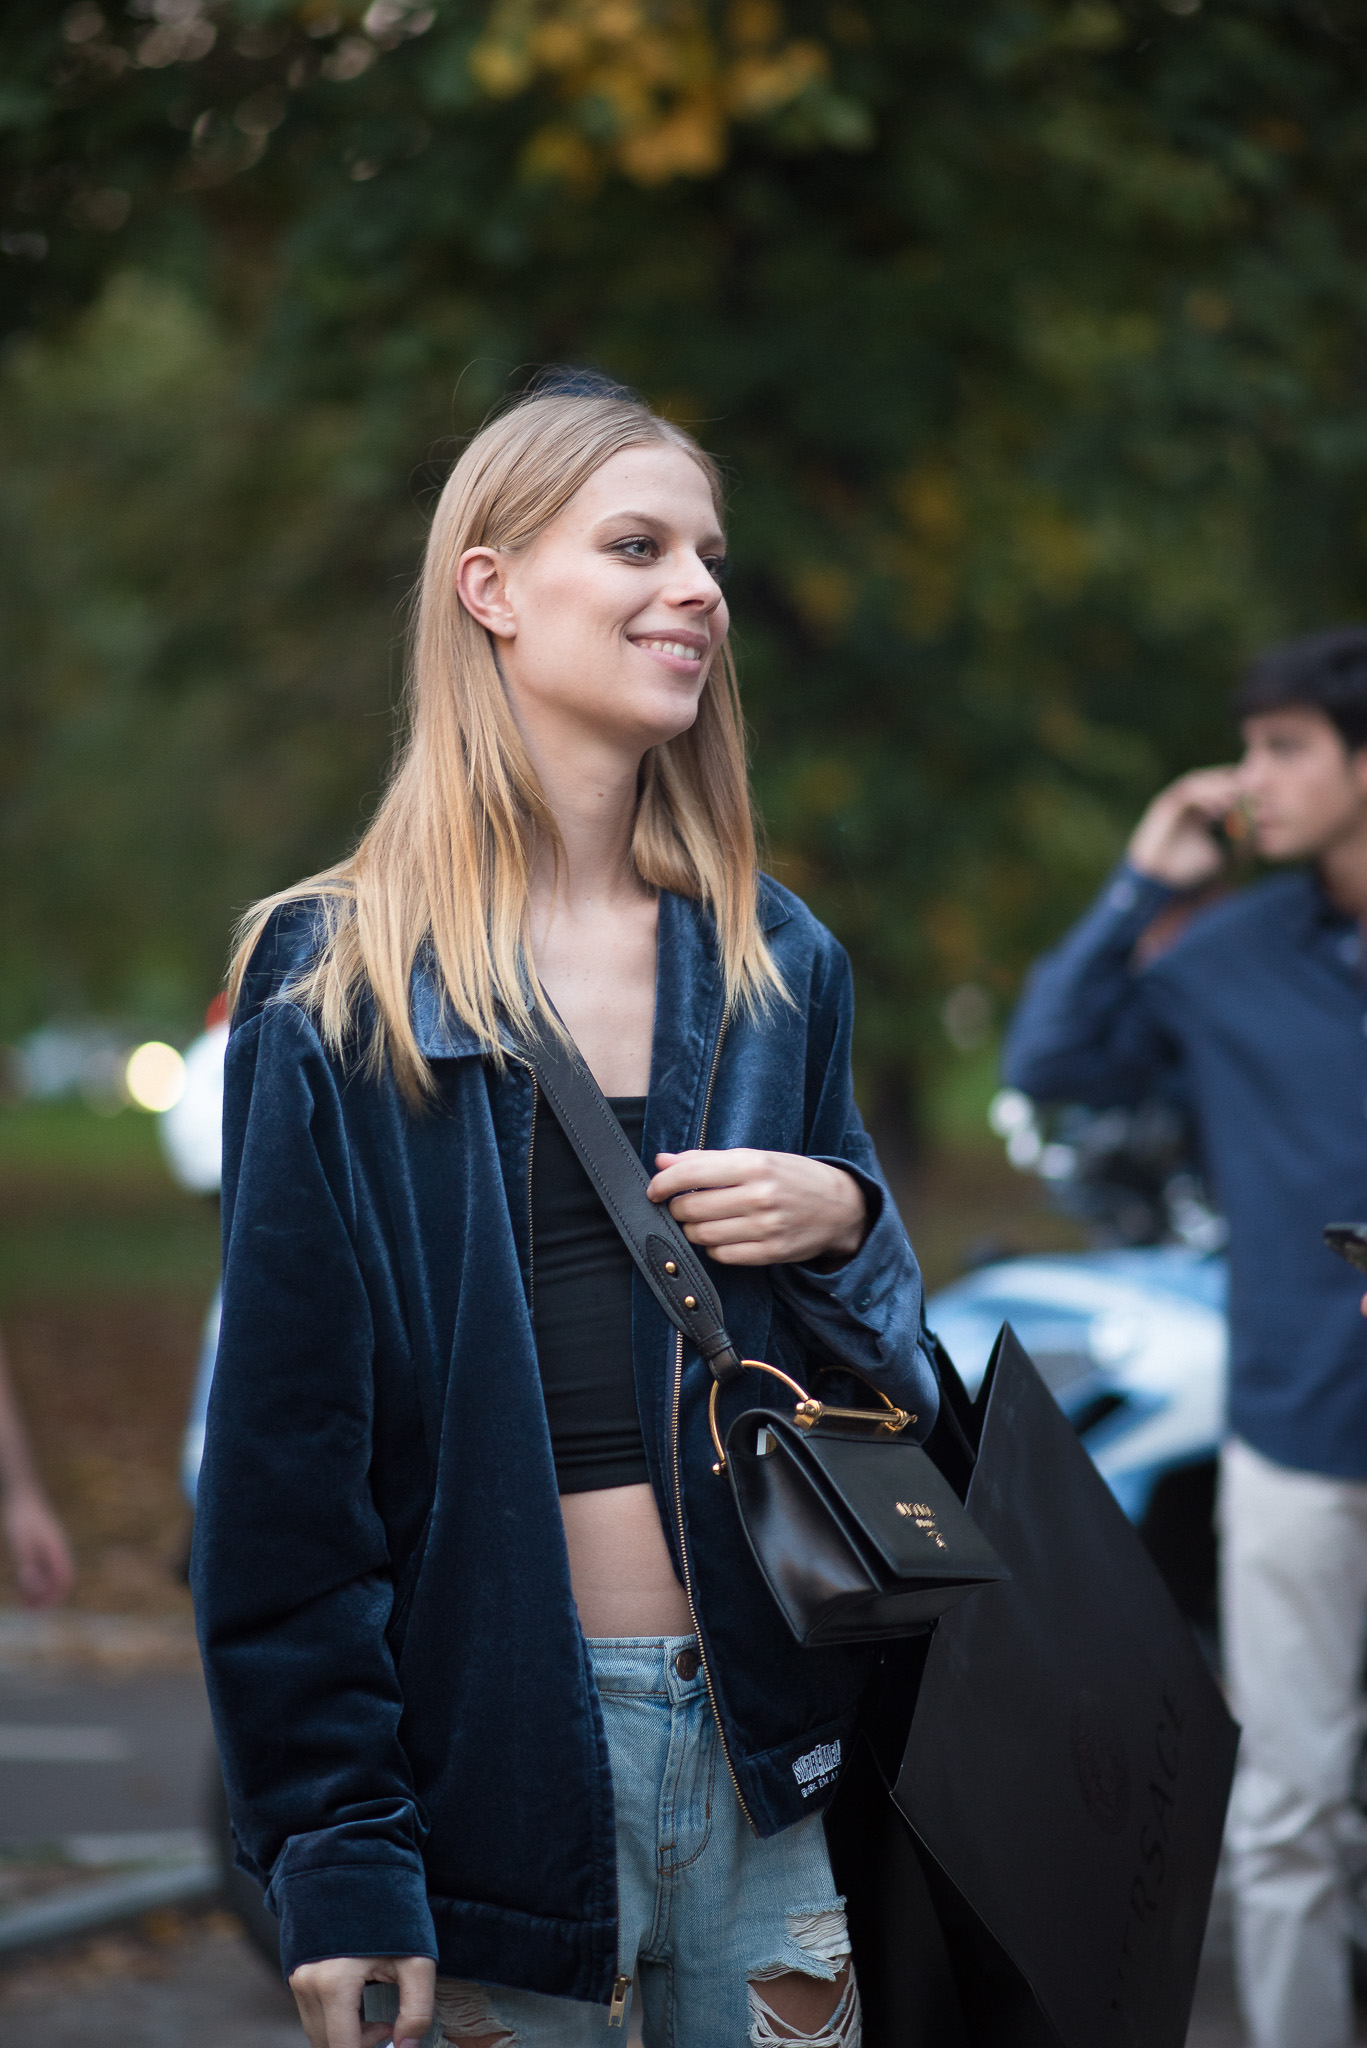 Lexi Boling Models Off Duty Versace Milan Fashion Week September 2017 Photography Annika Lagerqvist www.annikasomething.com